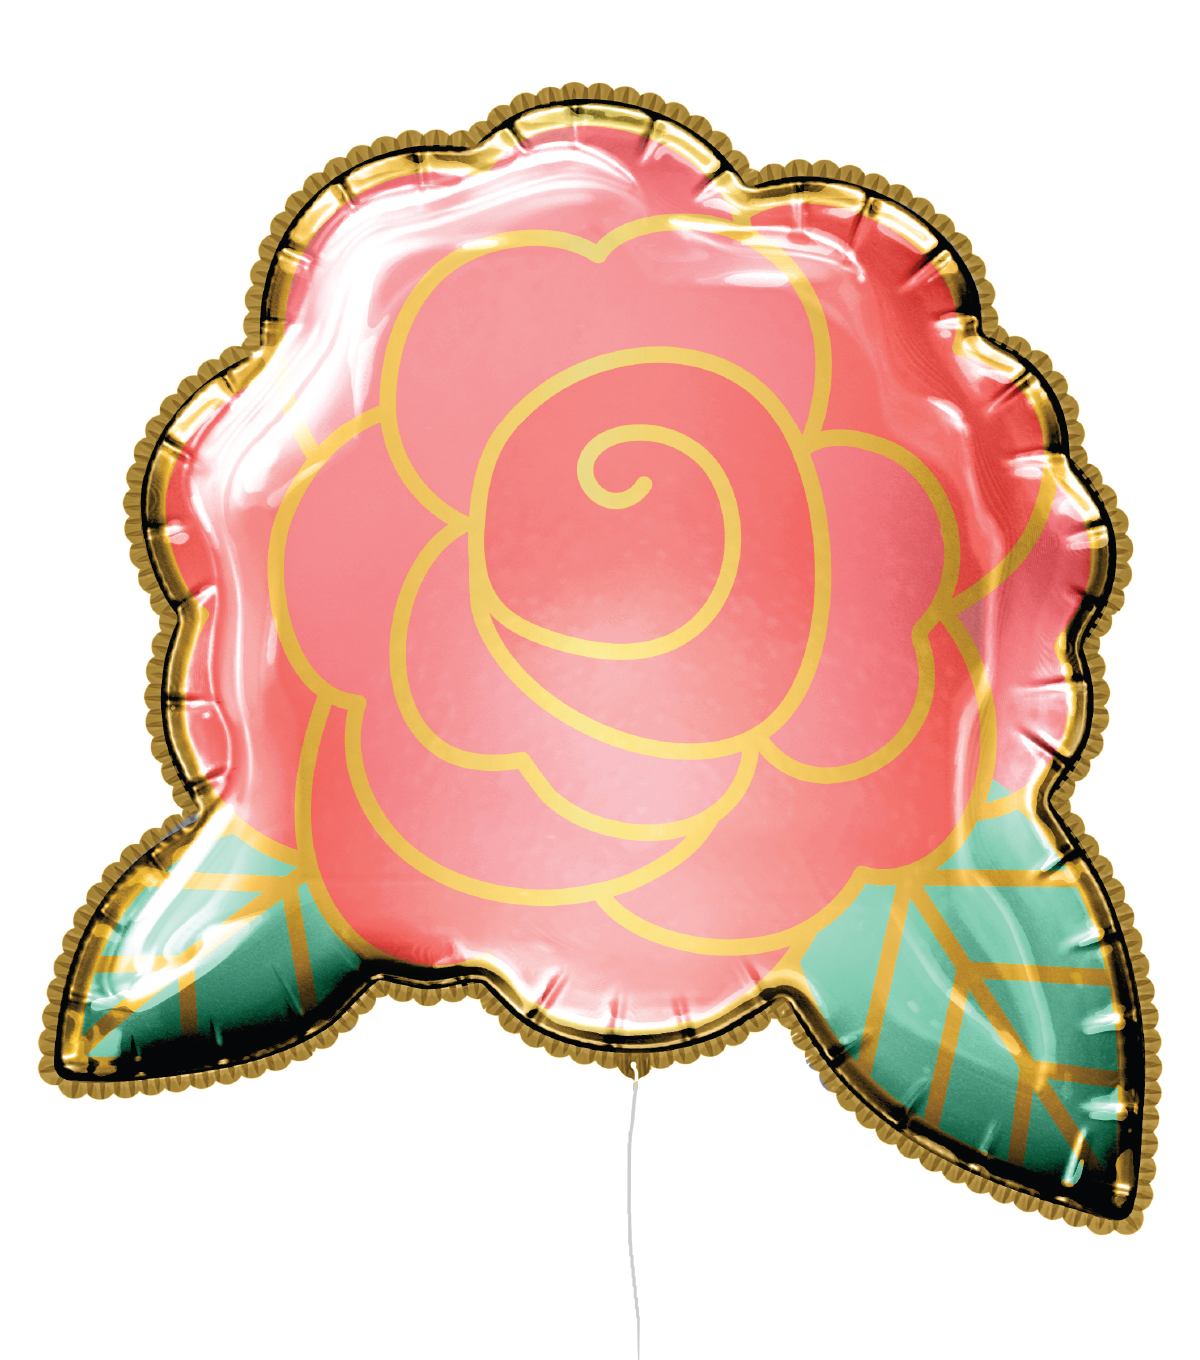 Rose Mylar Balloon with Ribbon